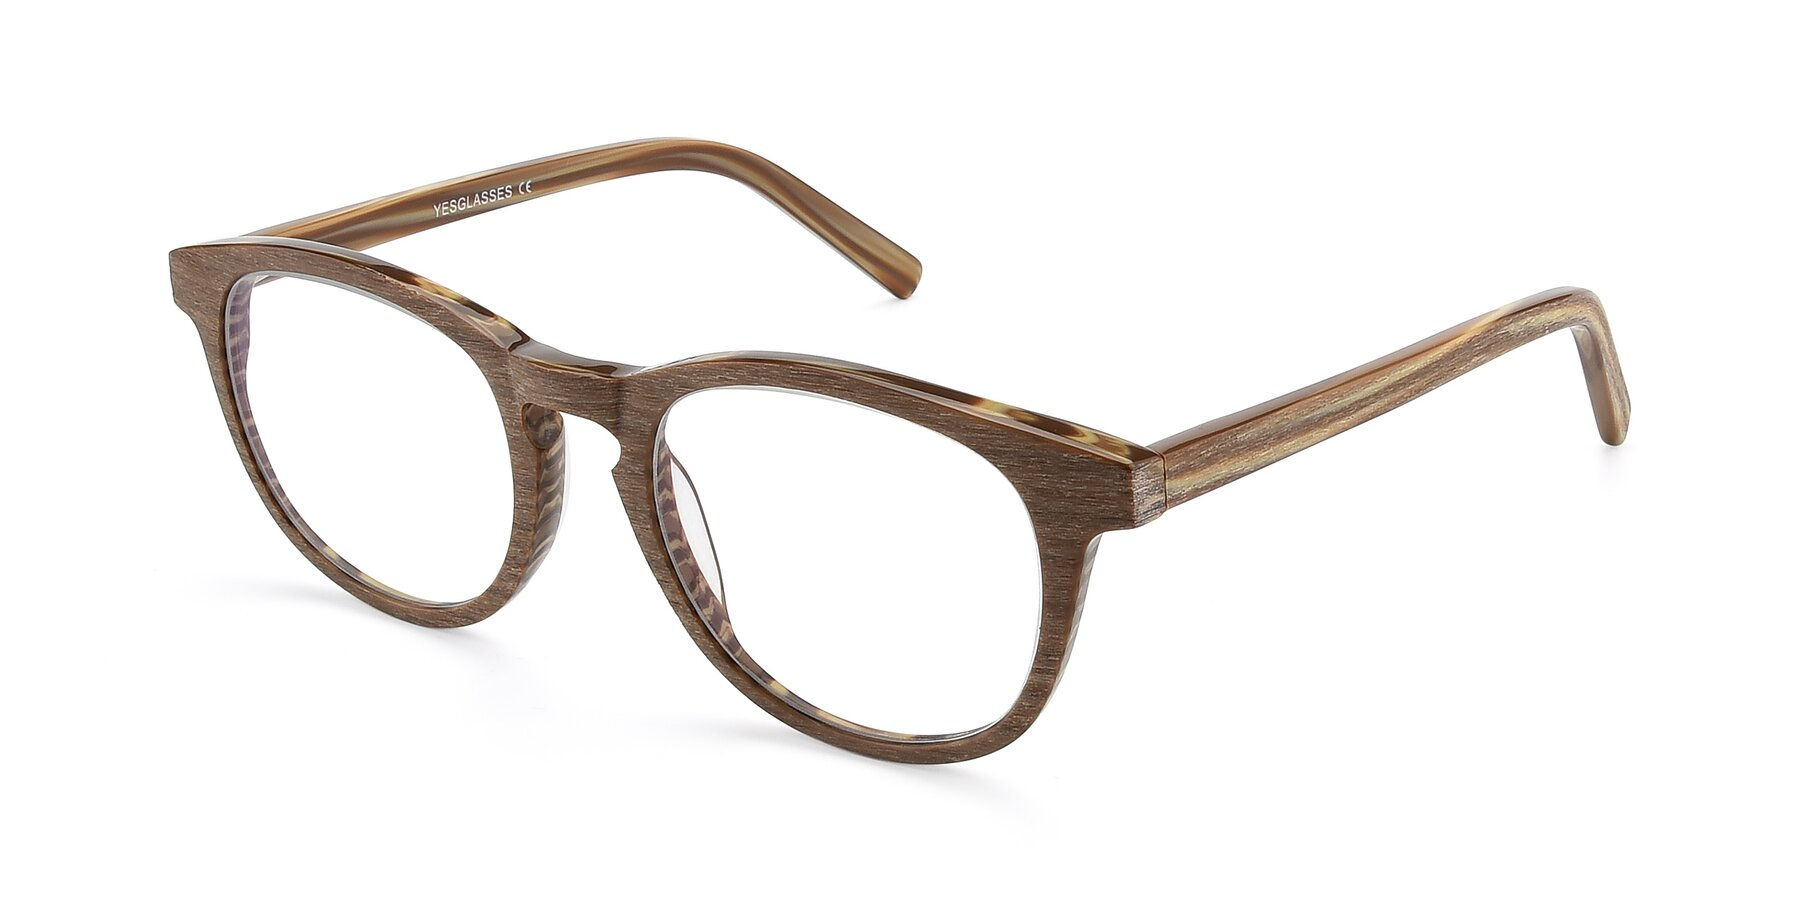 Angle of SR6044 in Brown-Wooden with Clear Eyeglass Lenses